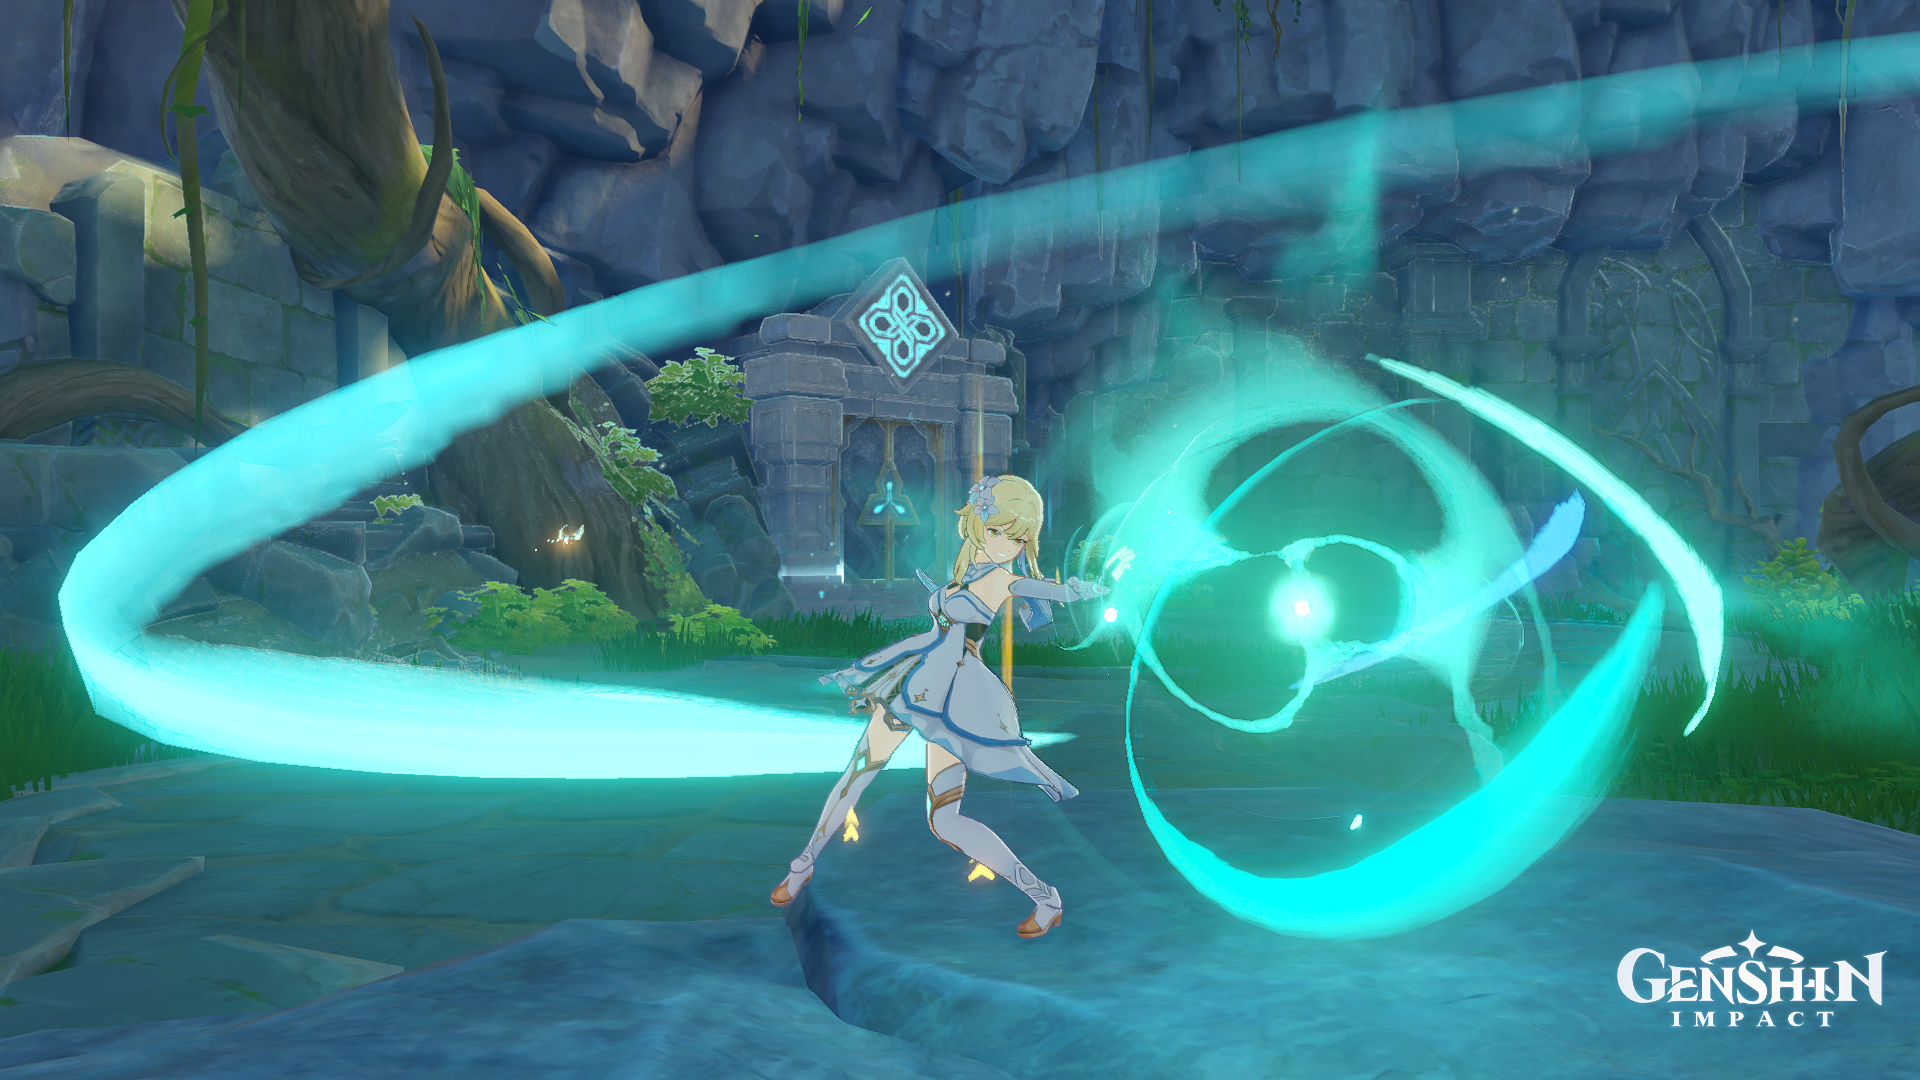 Genshin Impact - Anemo Traveler's Elemental Skill can be held down for stronger damage